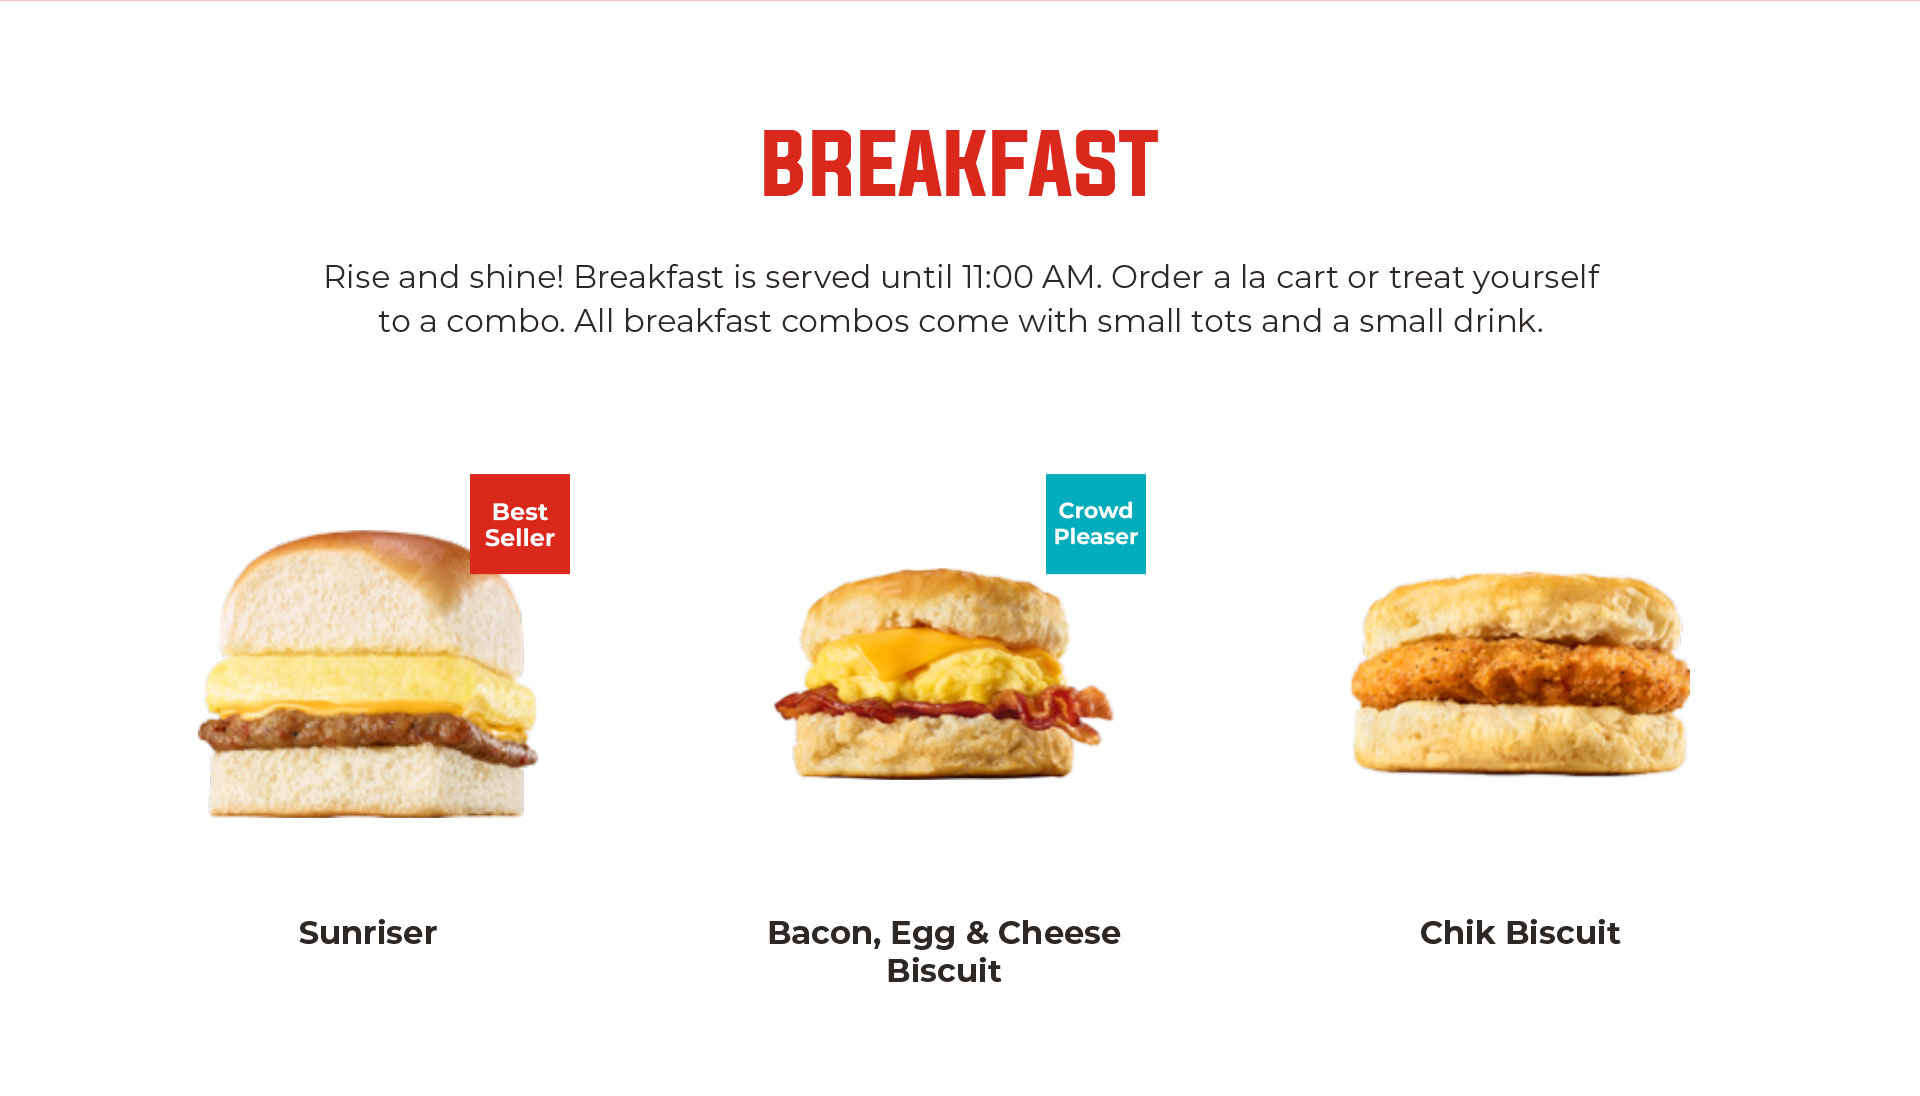 Image of the breakfast menu.